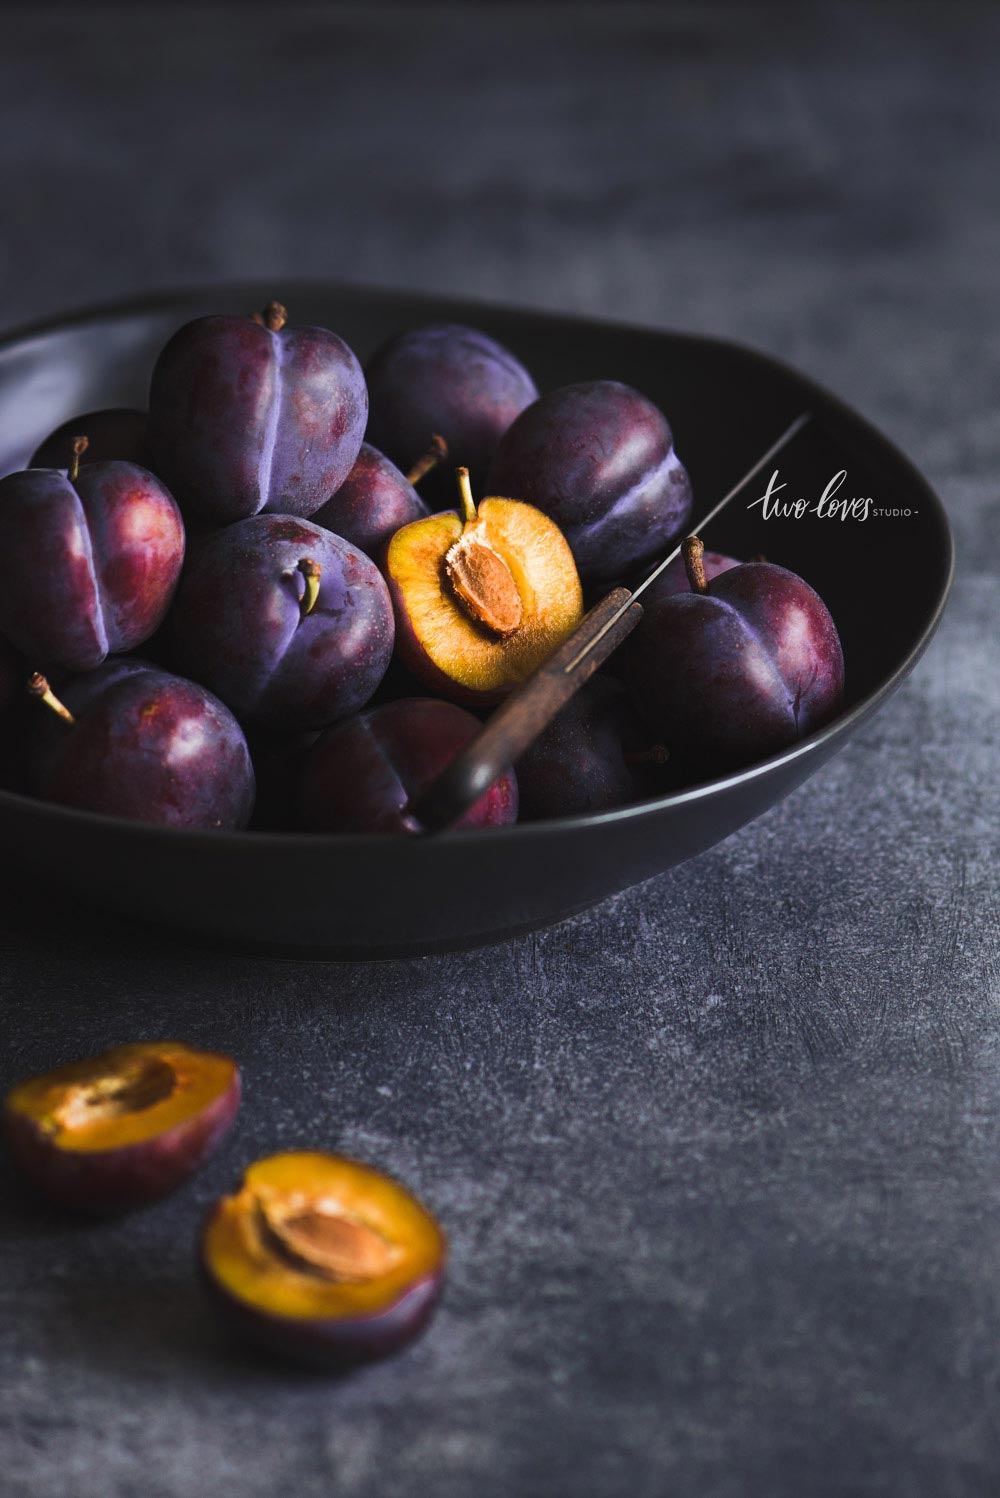 A bowl of plums with one cut in half.